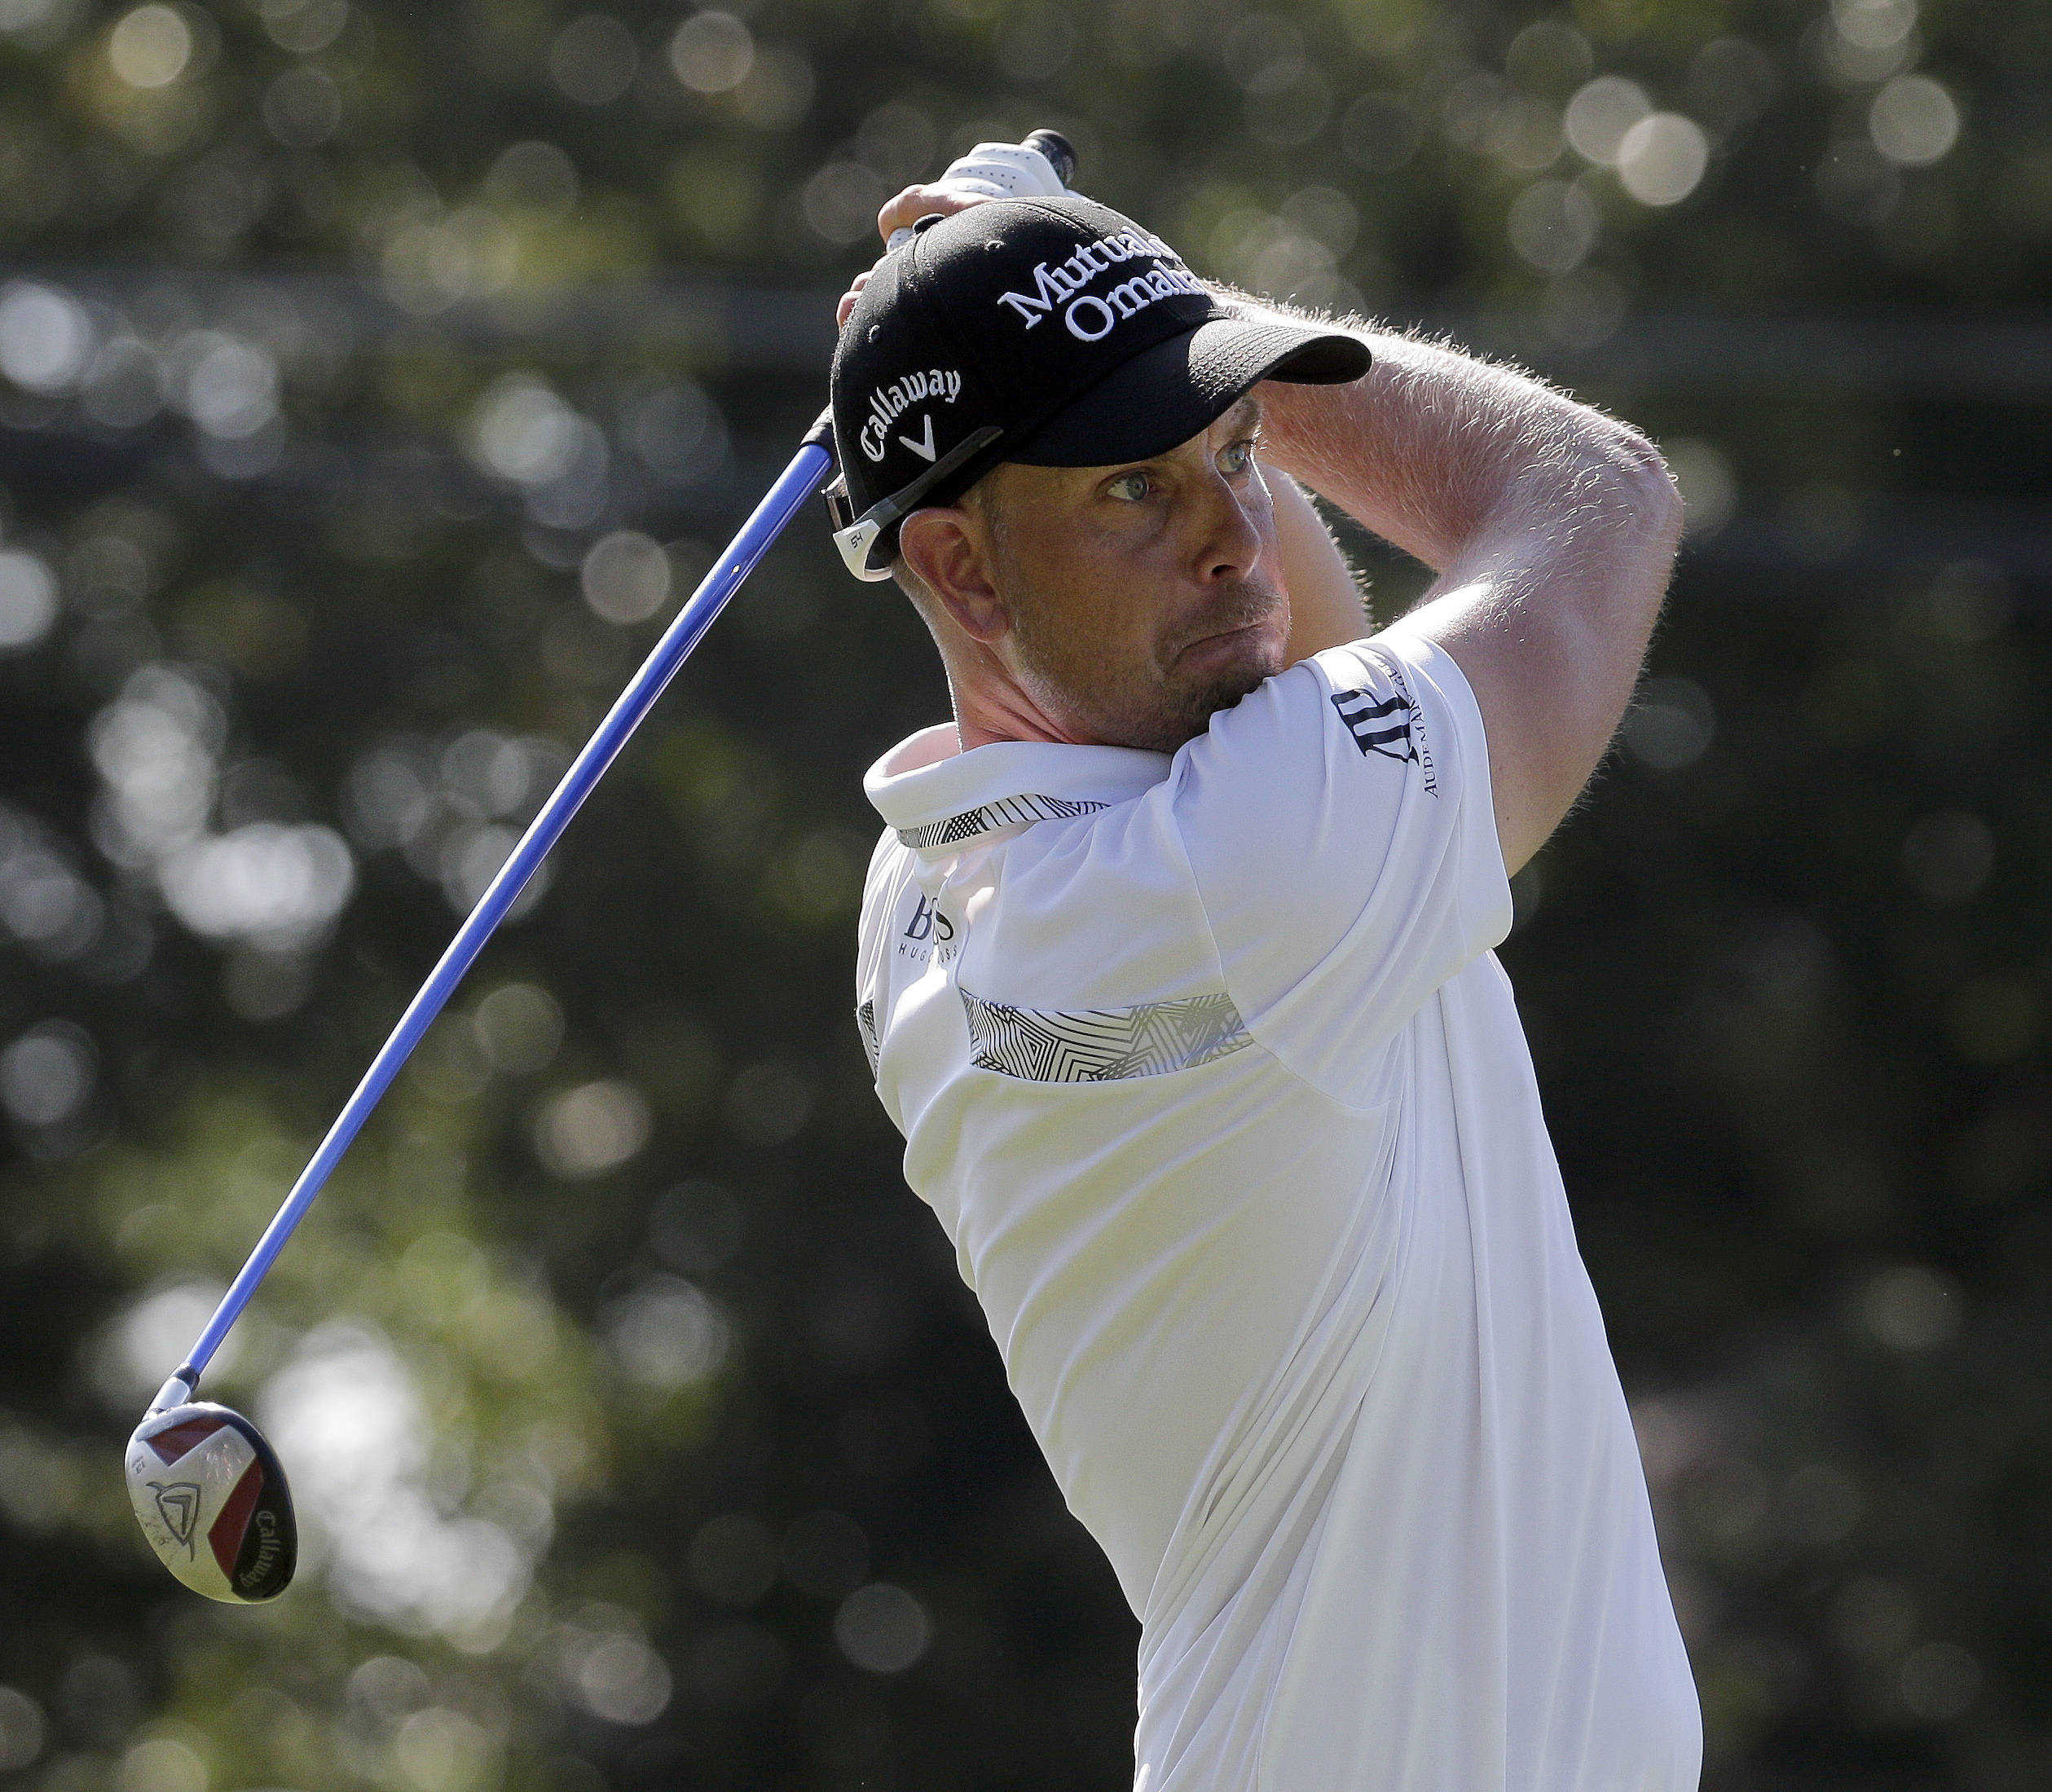 Henrik Stenson, of Sweden, watches his tee shot on the 18th hole during the second round of the Wyndham Championship golf tournament in Greensboro, N.C., Friday, Aug. 18, 2017. (AP Photo/Chuck Burton)